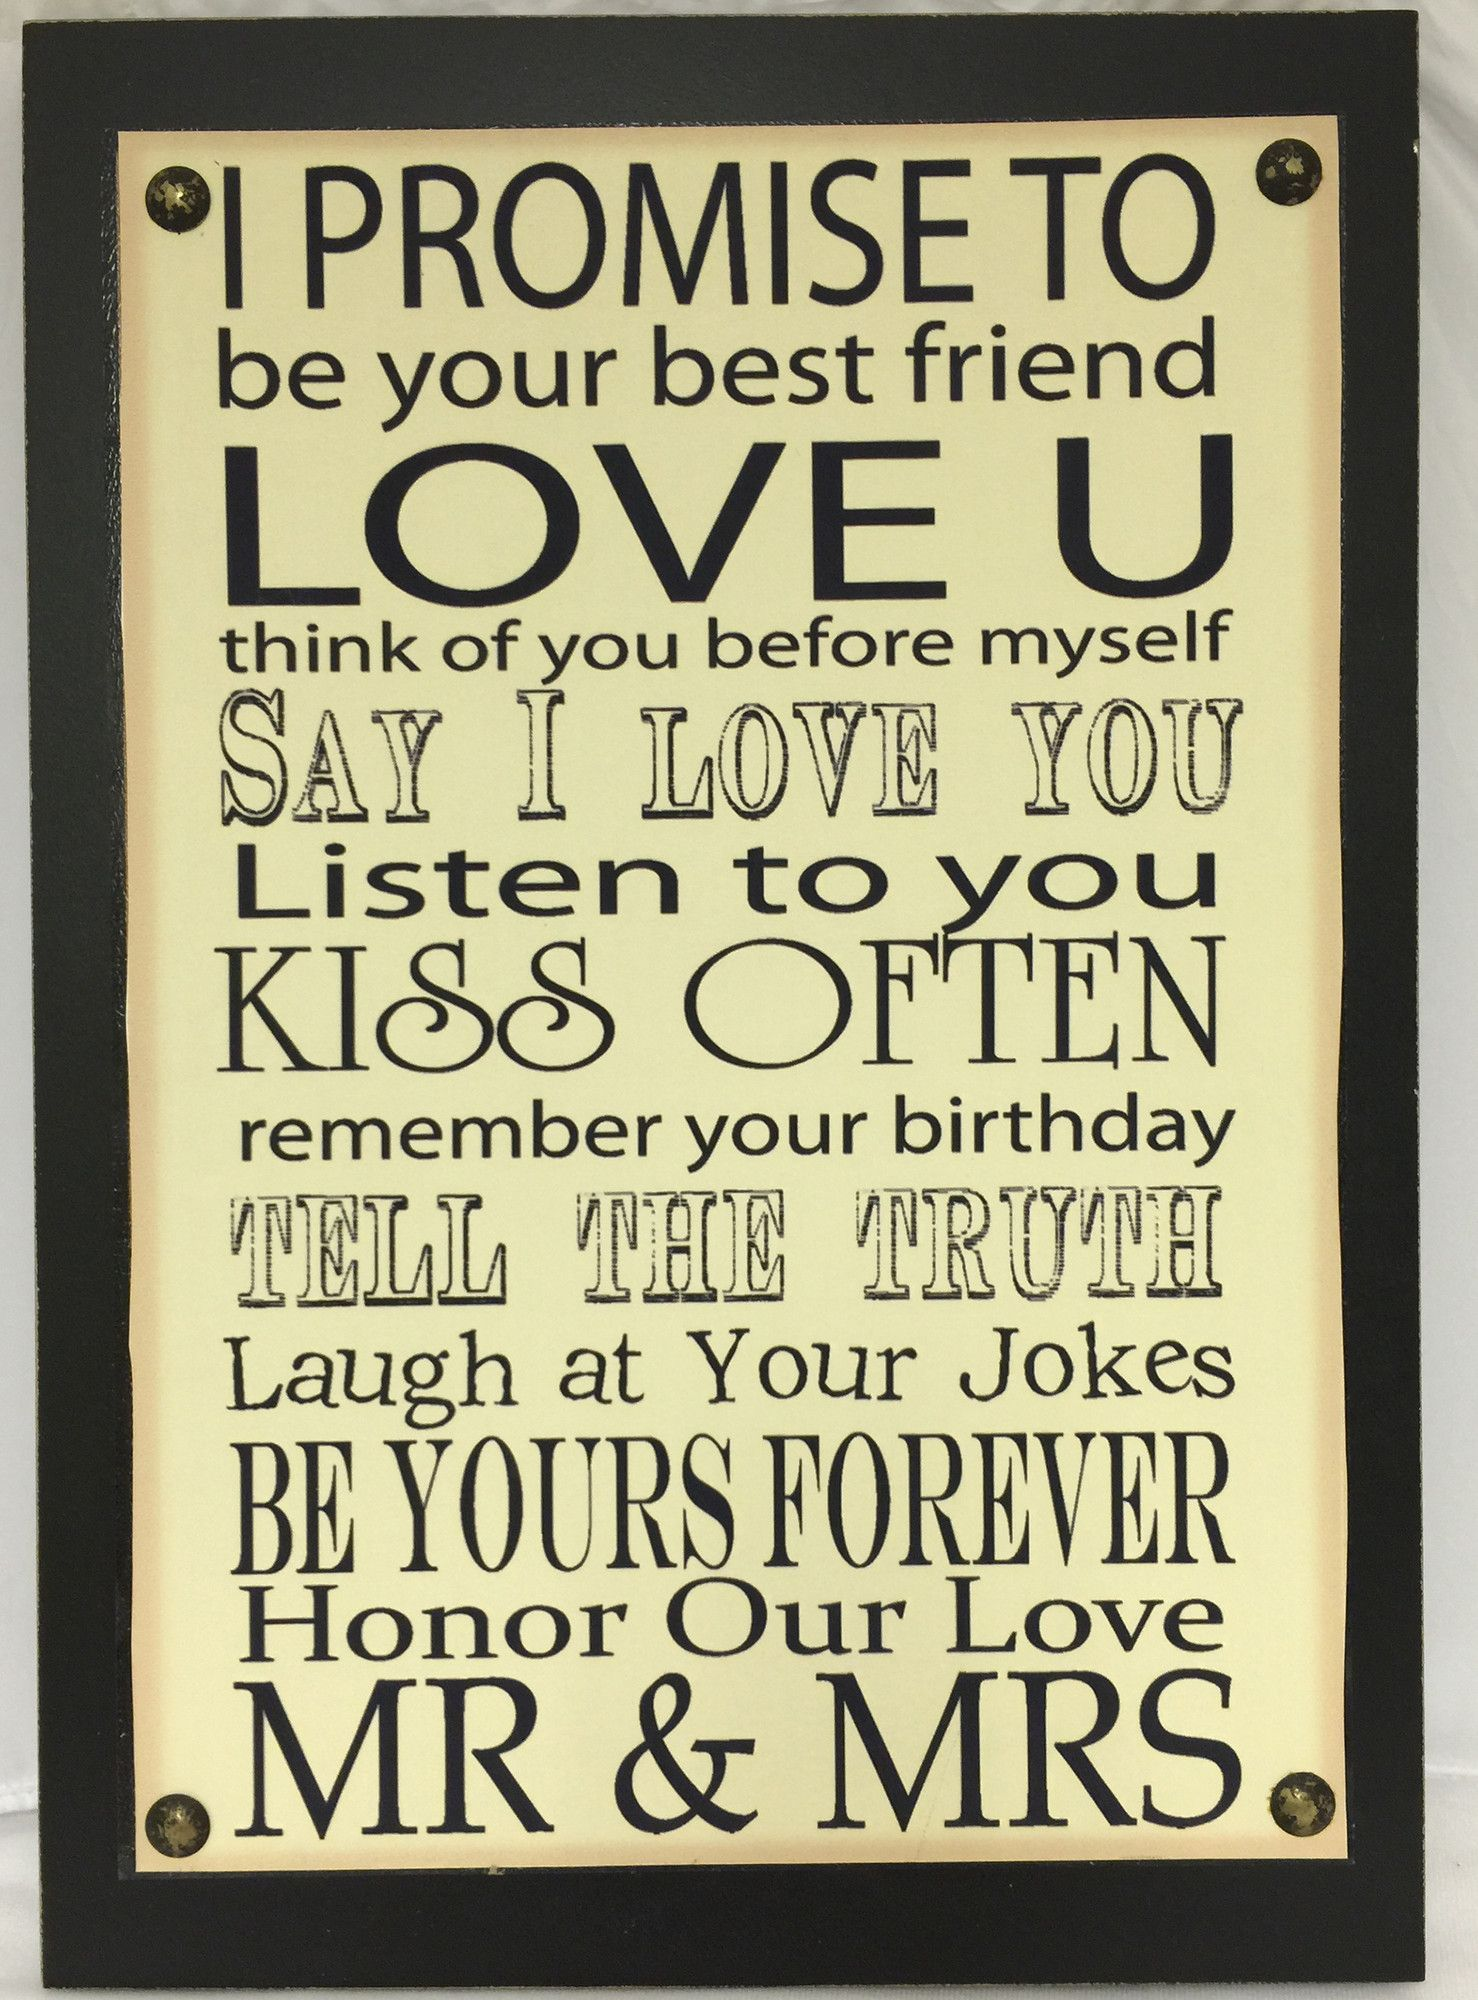 I Promise to Love U Sign Wall Decor | Furniture | Pinterest | Wall ...